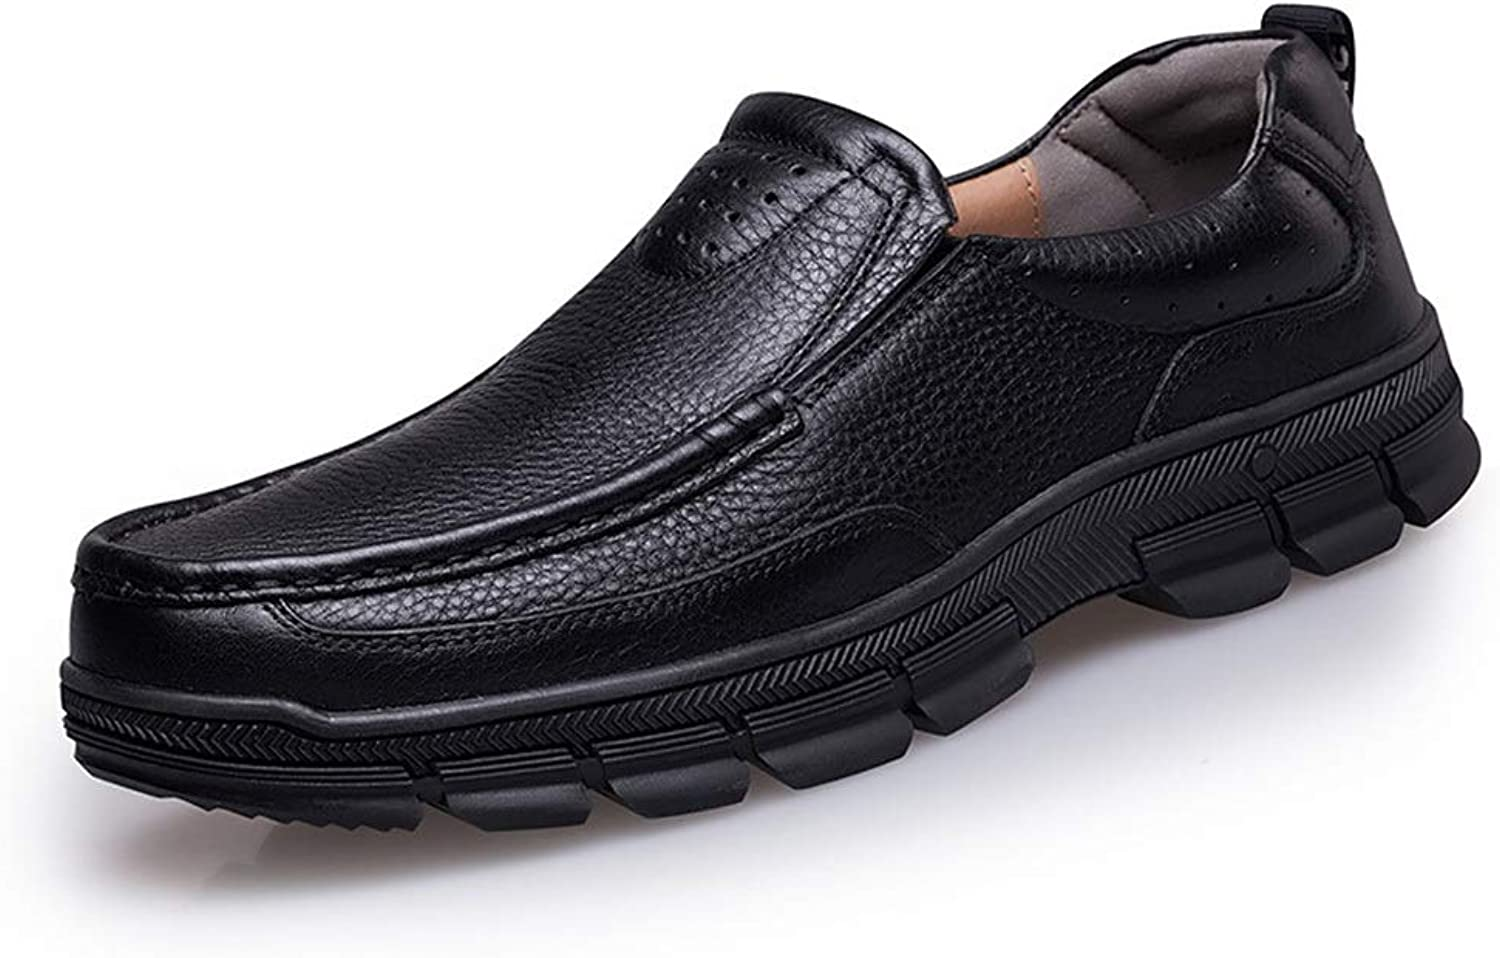 First Layer Leather, Feet, Single shoes, Business Casual Dress shoes Men's Leather shoes. (color   Black, Size   41)